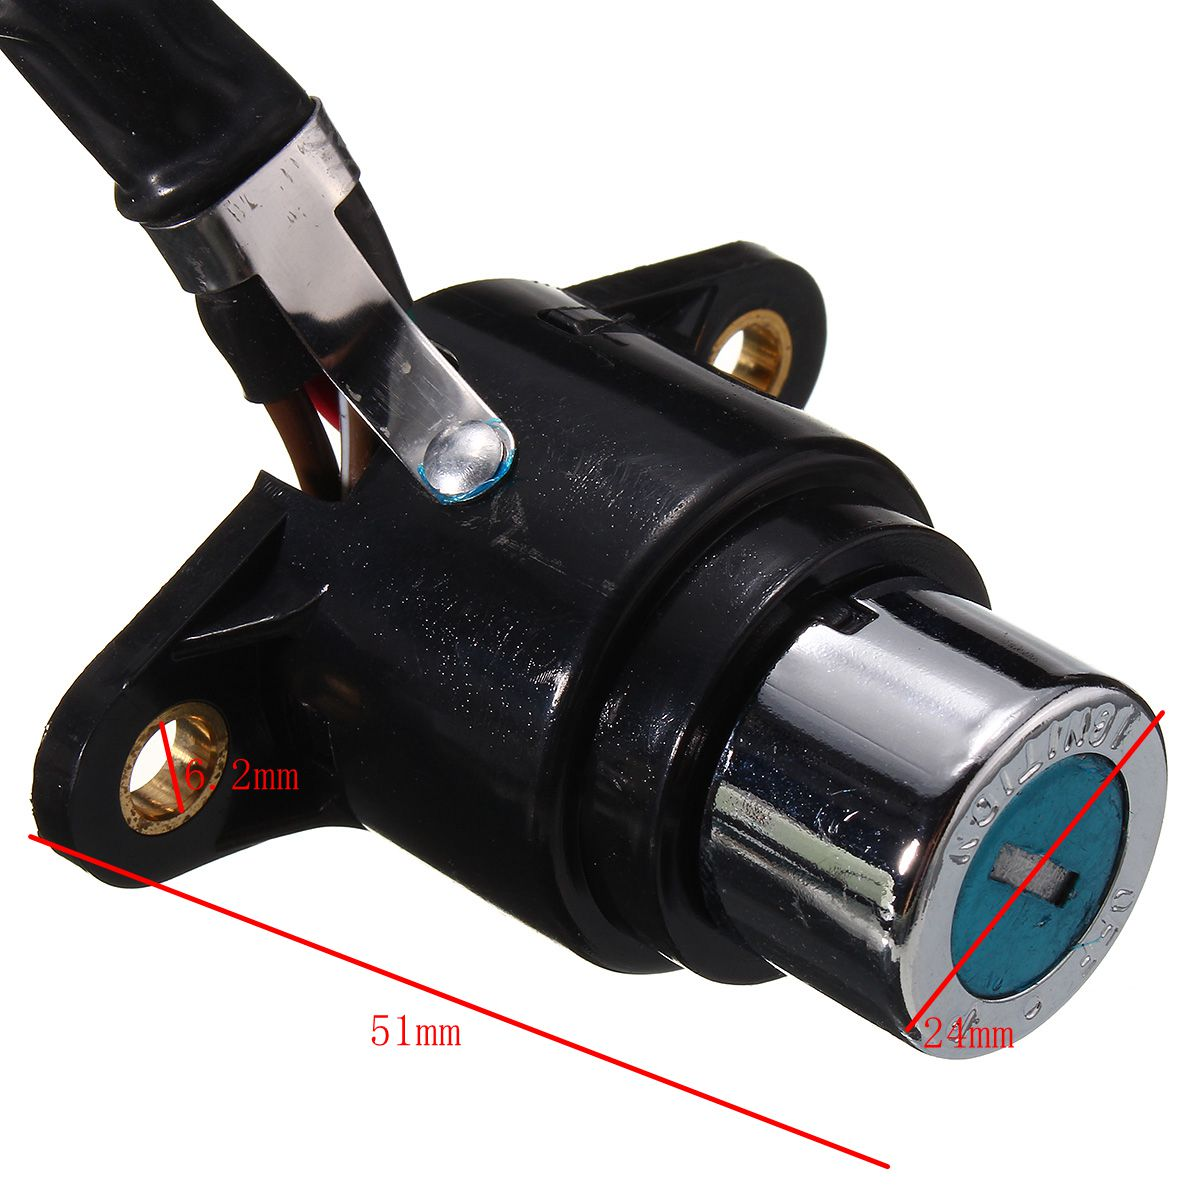 Hot Sale Motorcycle Ignition Key Switch Lock Craft Assembly 35100-413-007 For Honda CB/CM 400/450